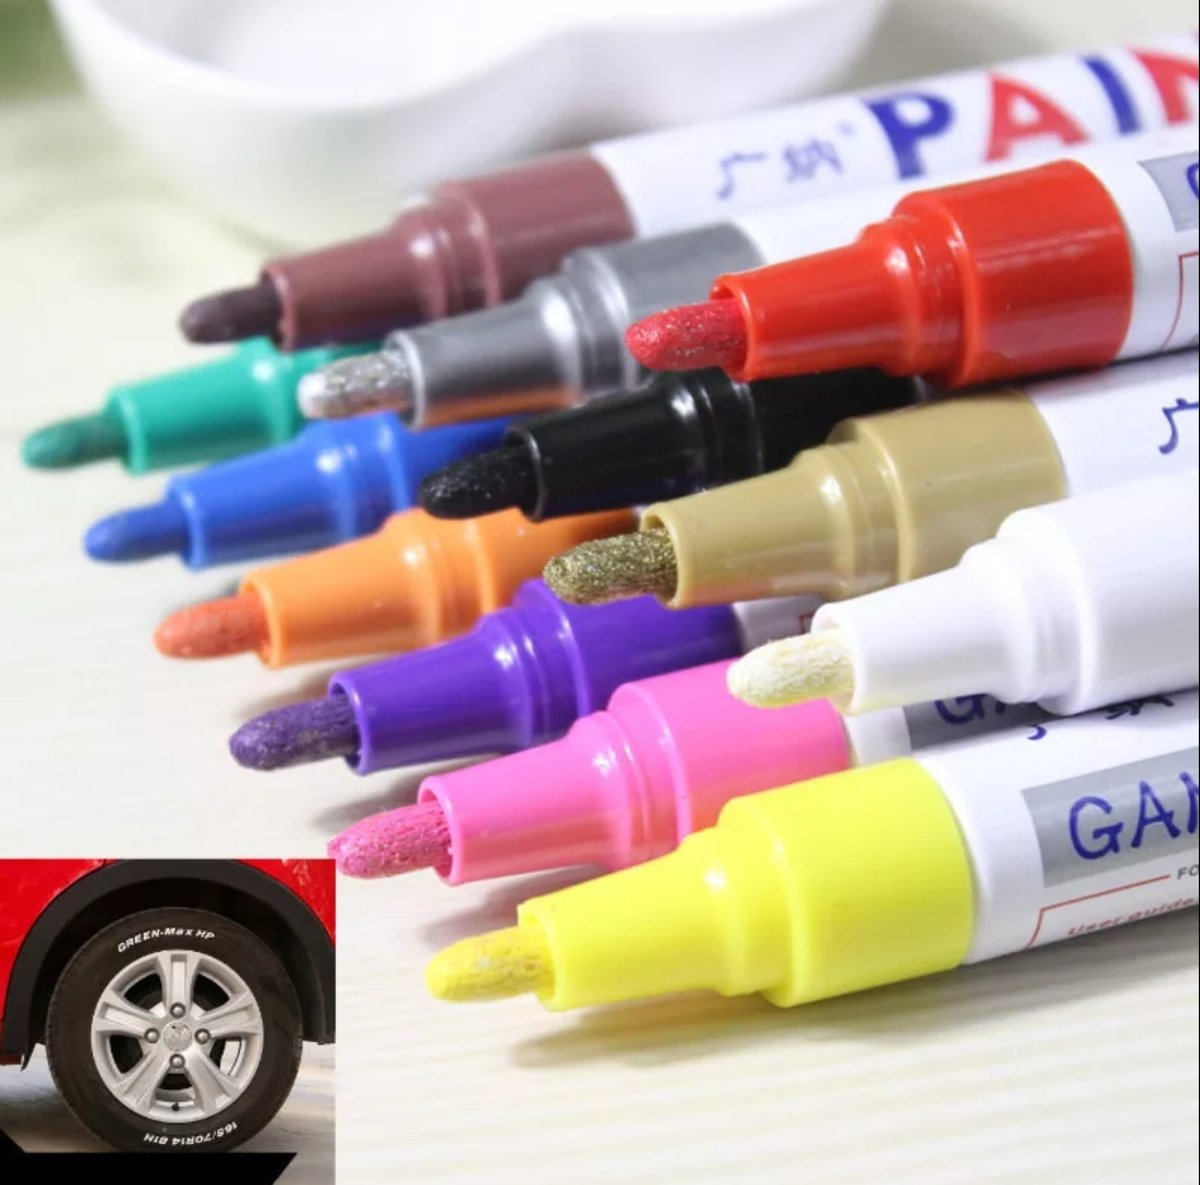 PAINT MARKER PERMANENT WIT STIFT KINDEREN KNUTSELEN METALLIC